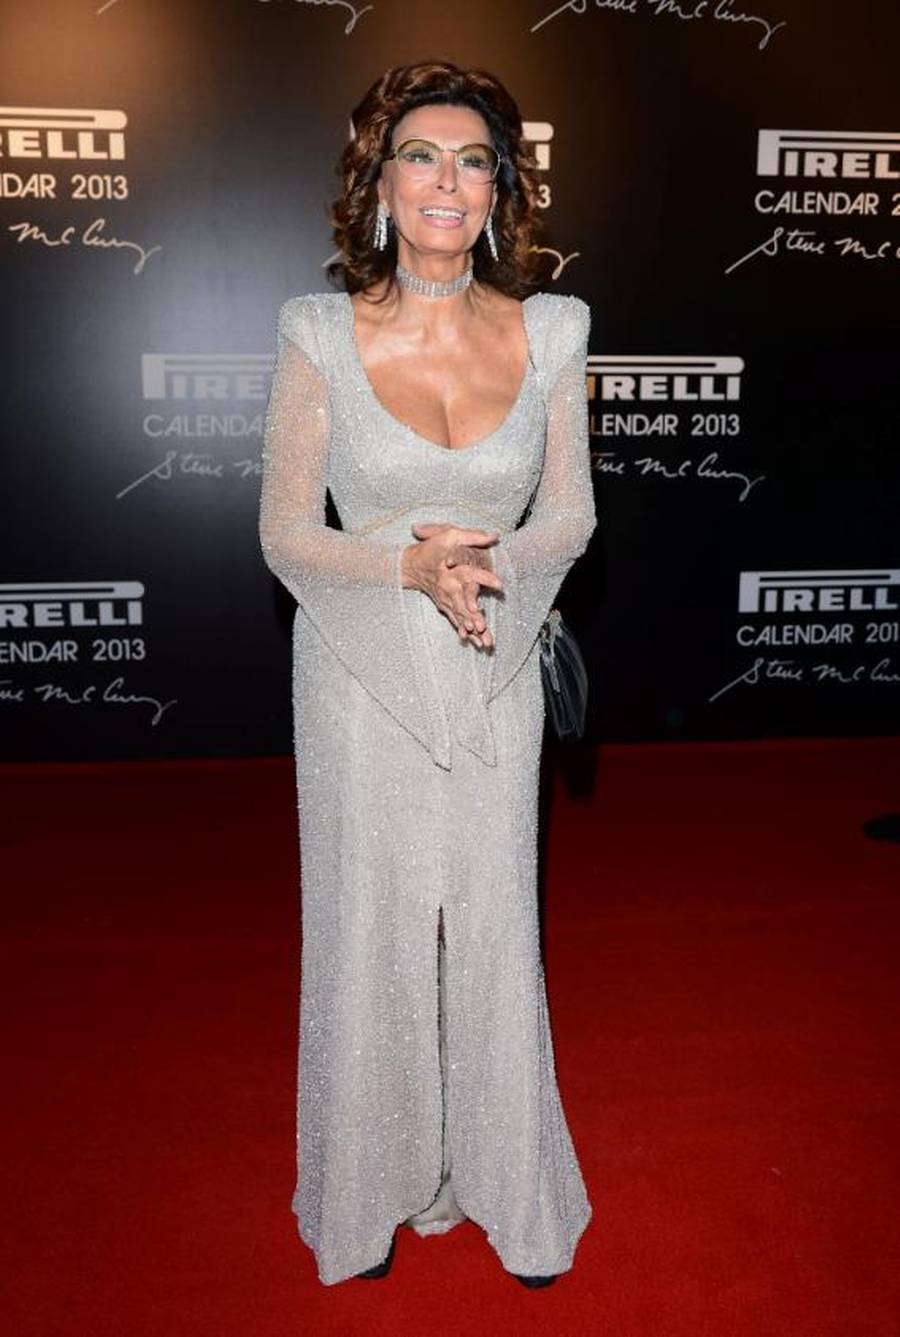 Sophia Loren holder sig godt. (Foto: All Over Press)